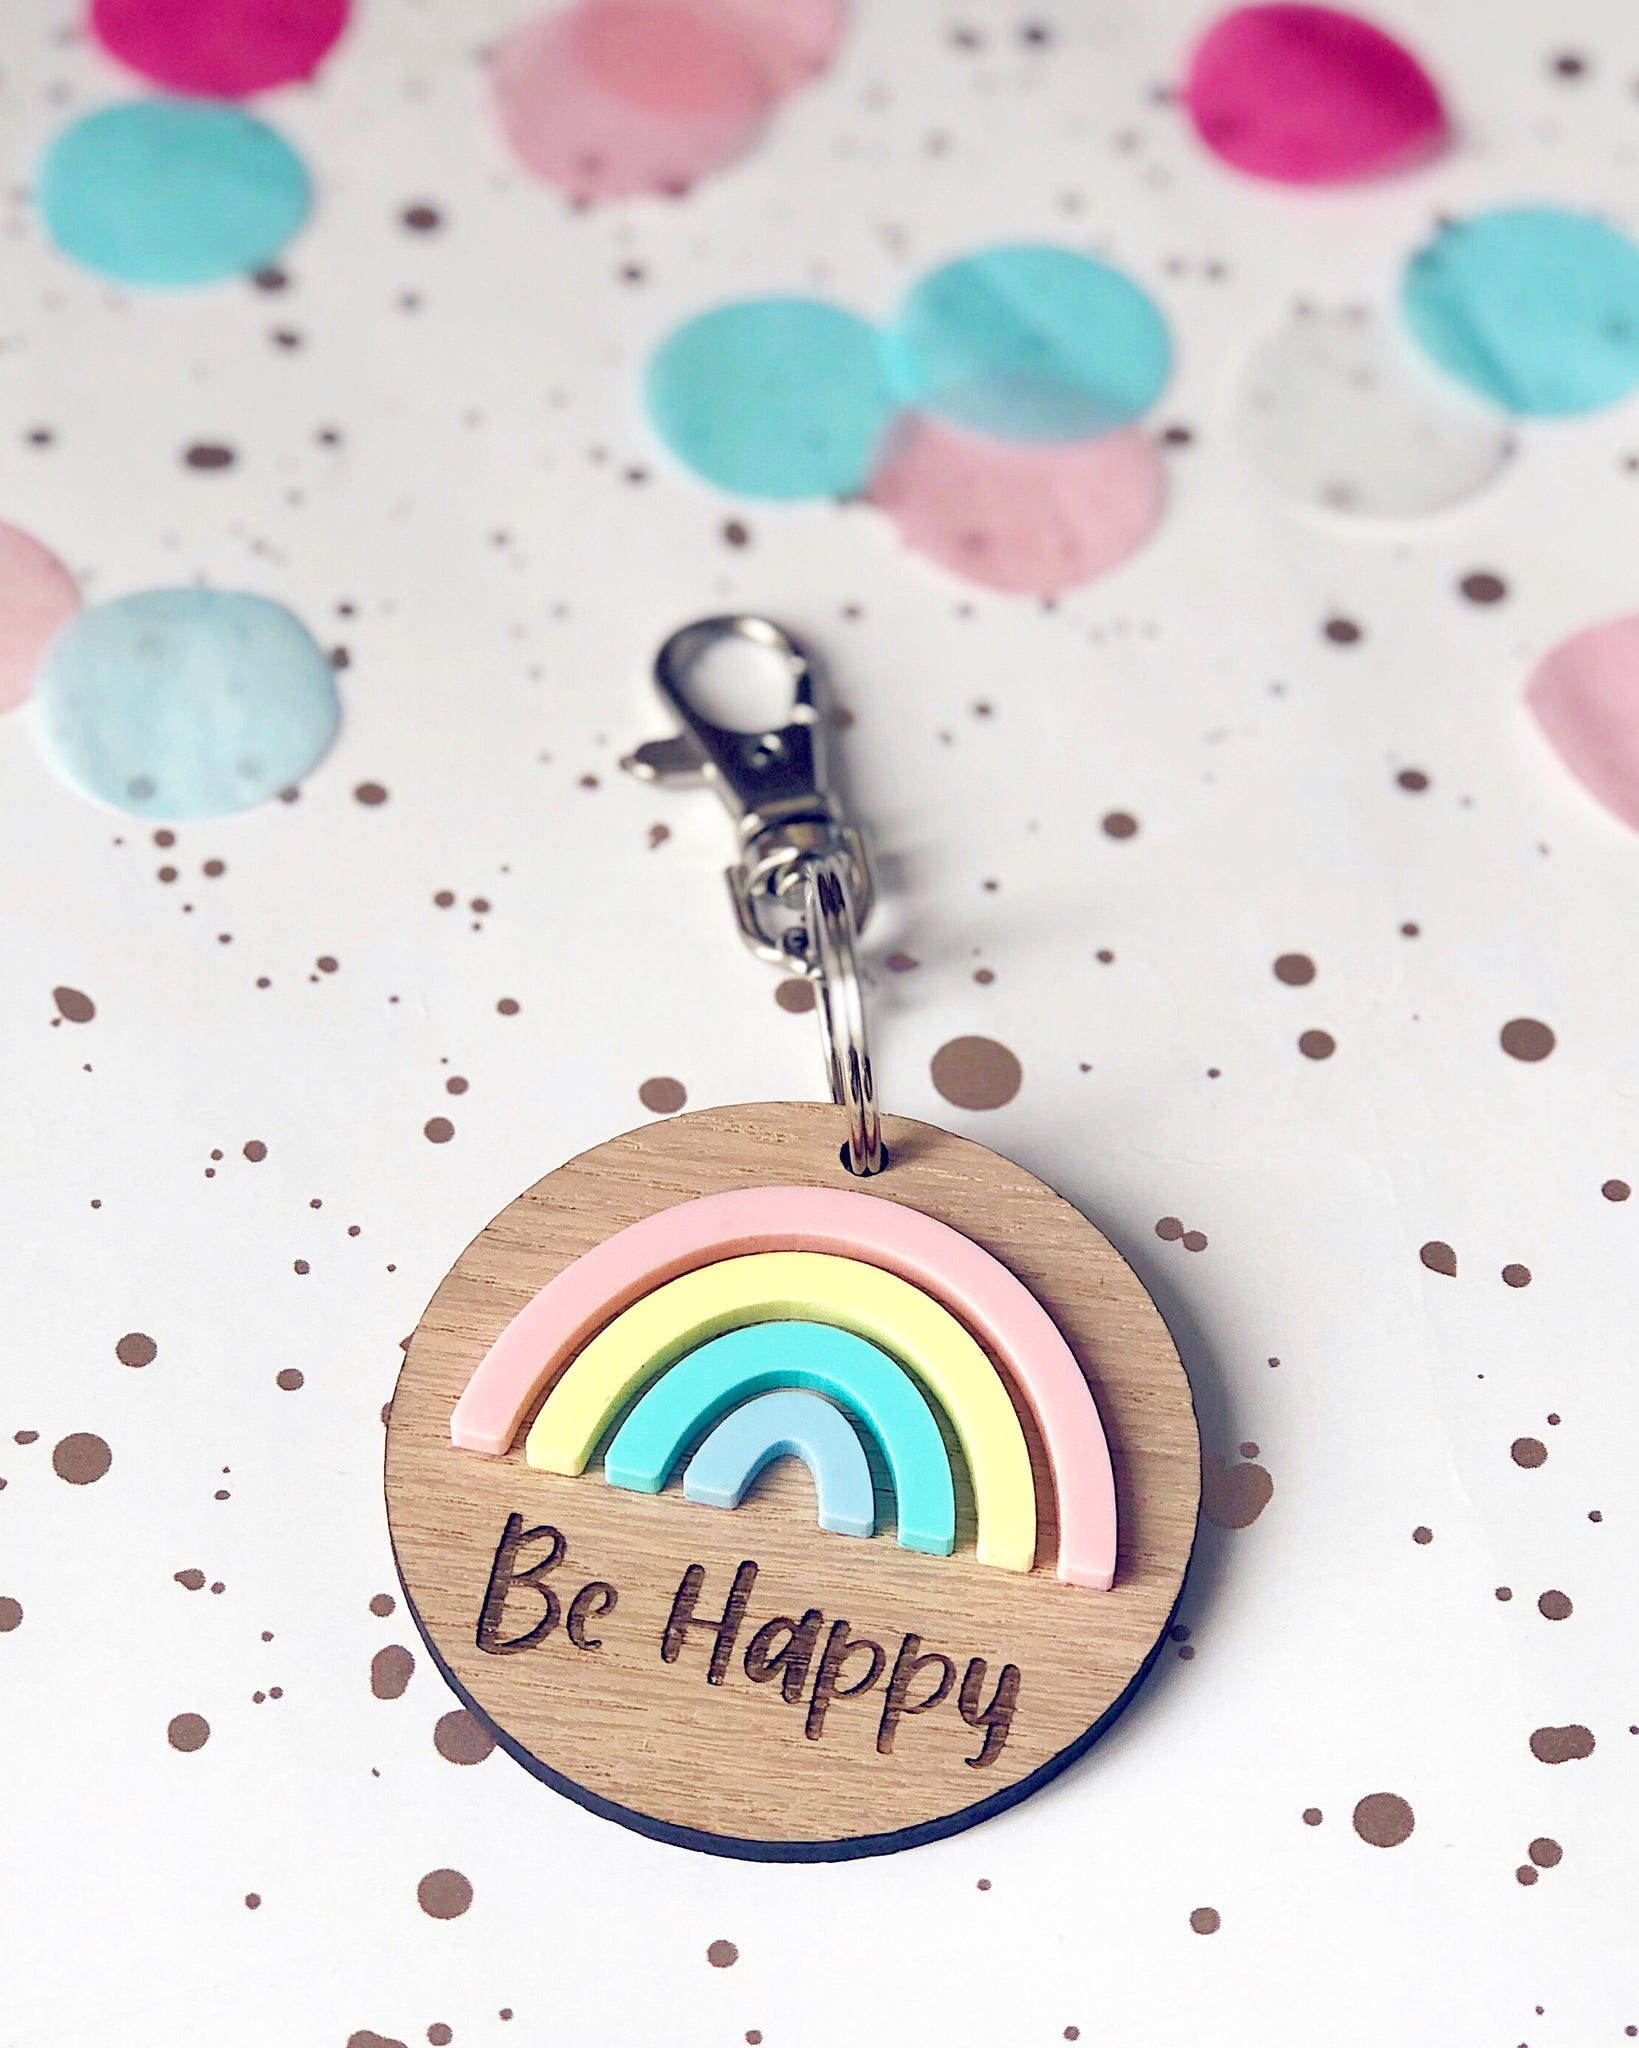 Be Happy Rainbow key ring - pastel coloured rainbow in acrylic with wooden cirrcular keyring